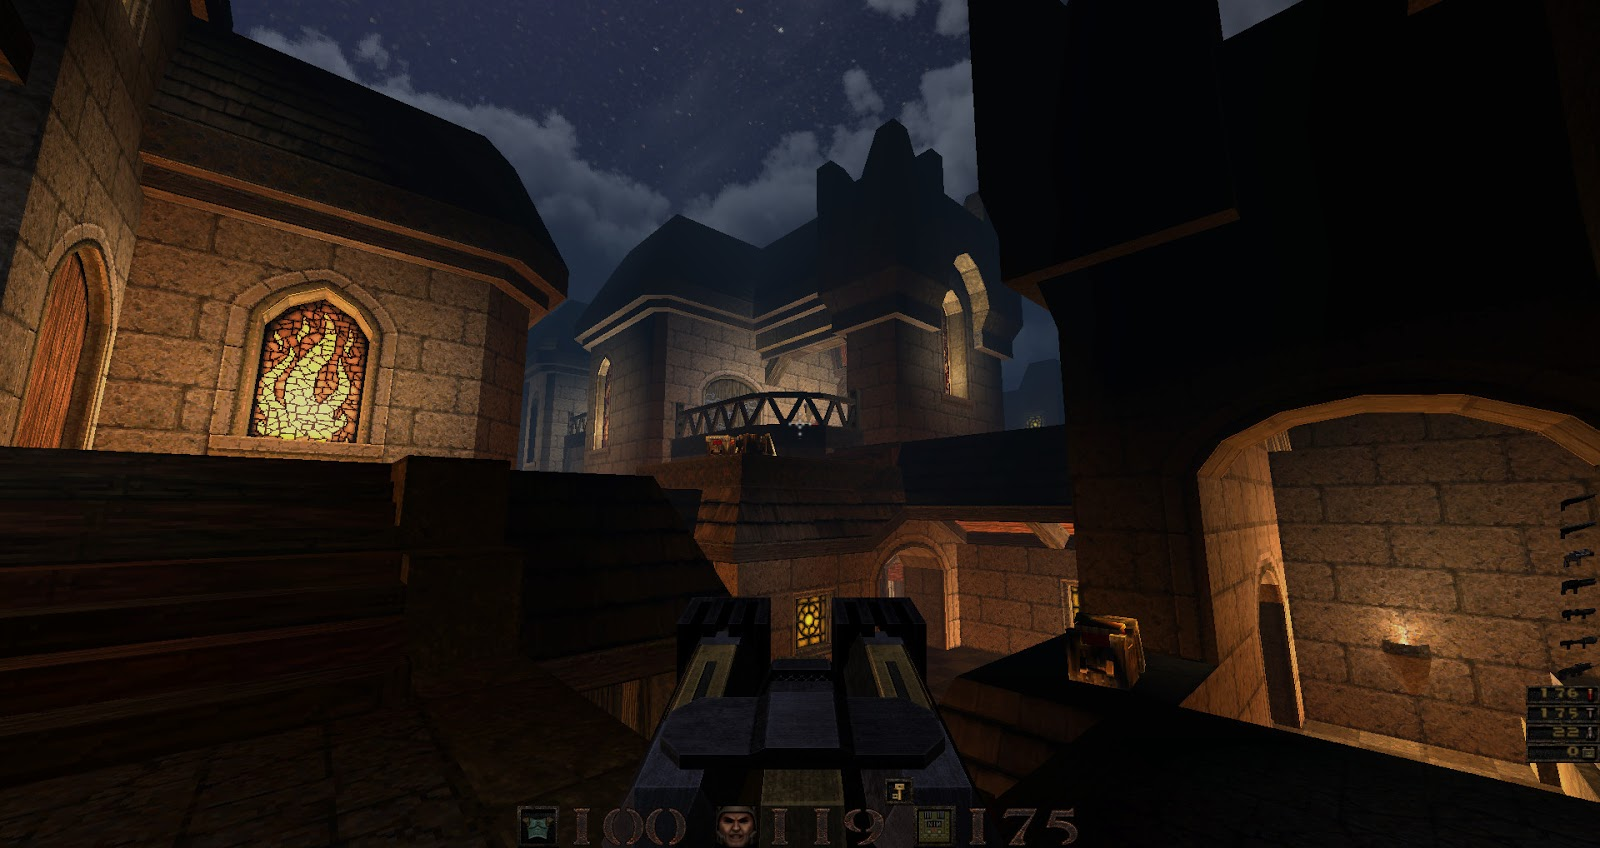 quake arcane dimensions the horde of zendar map looks very much like